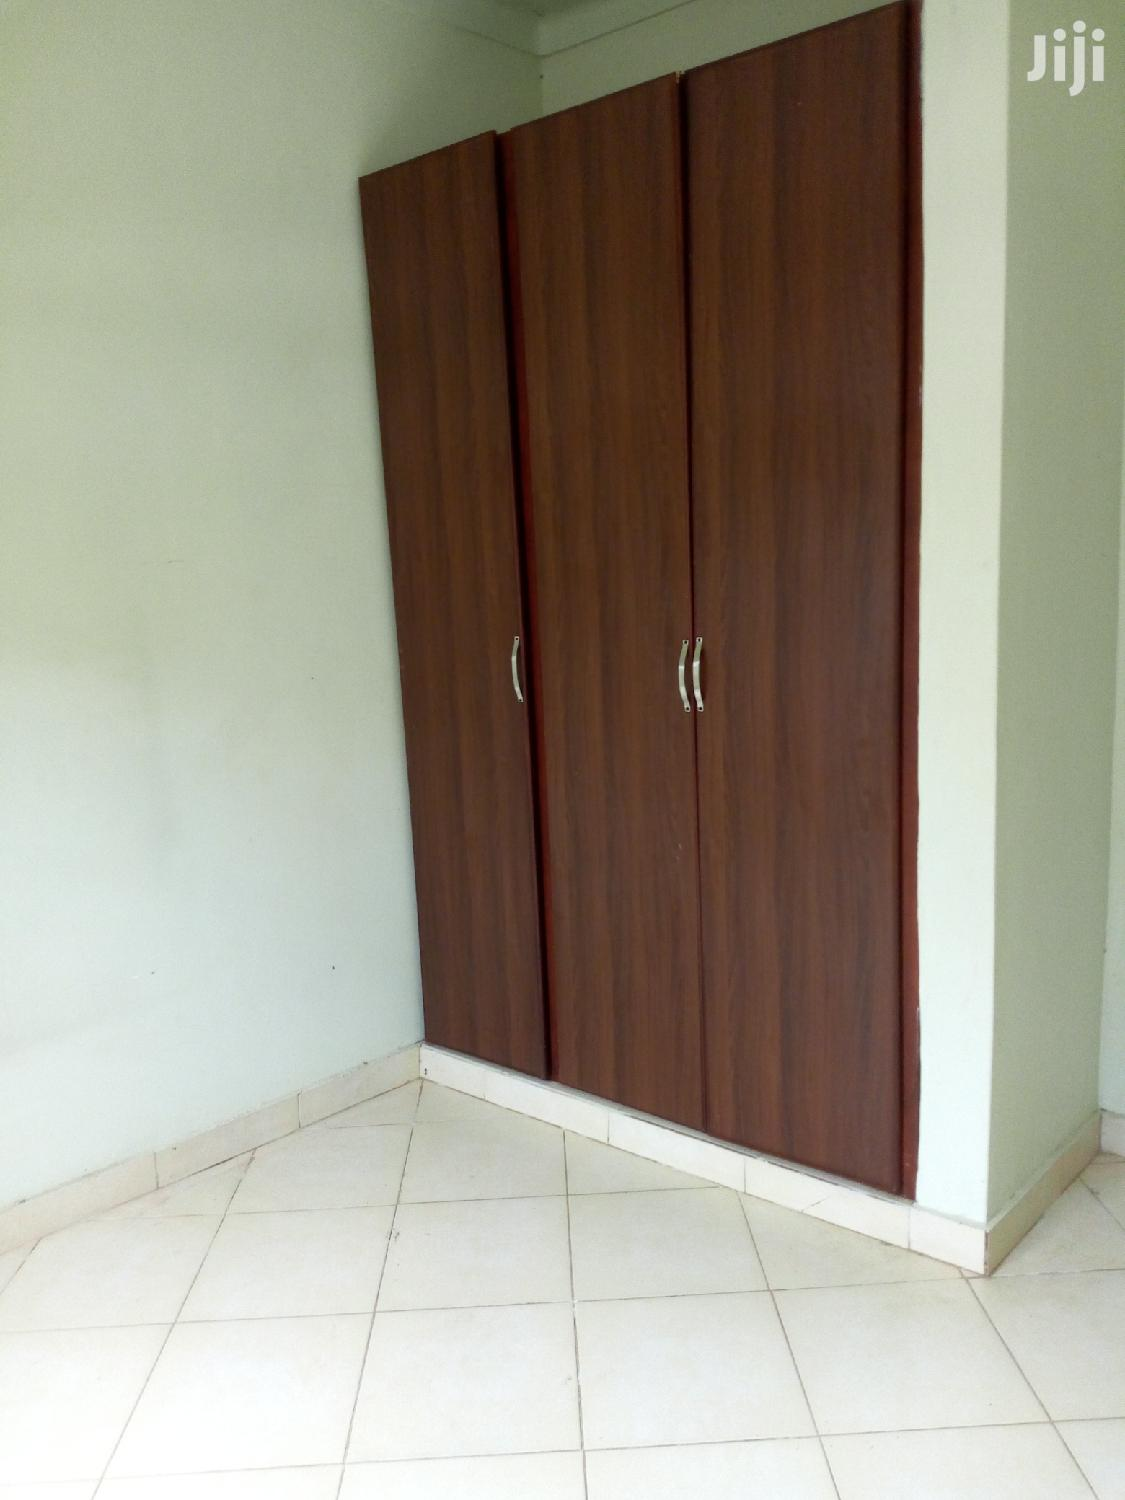 Two Bedroom House for Rent in Naalya | Houses & Apartments For Rent for sale in Kampala, Central Region, Uganda